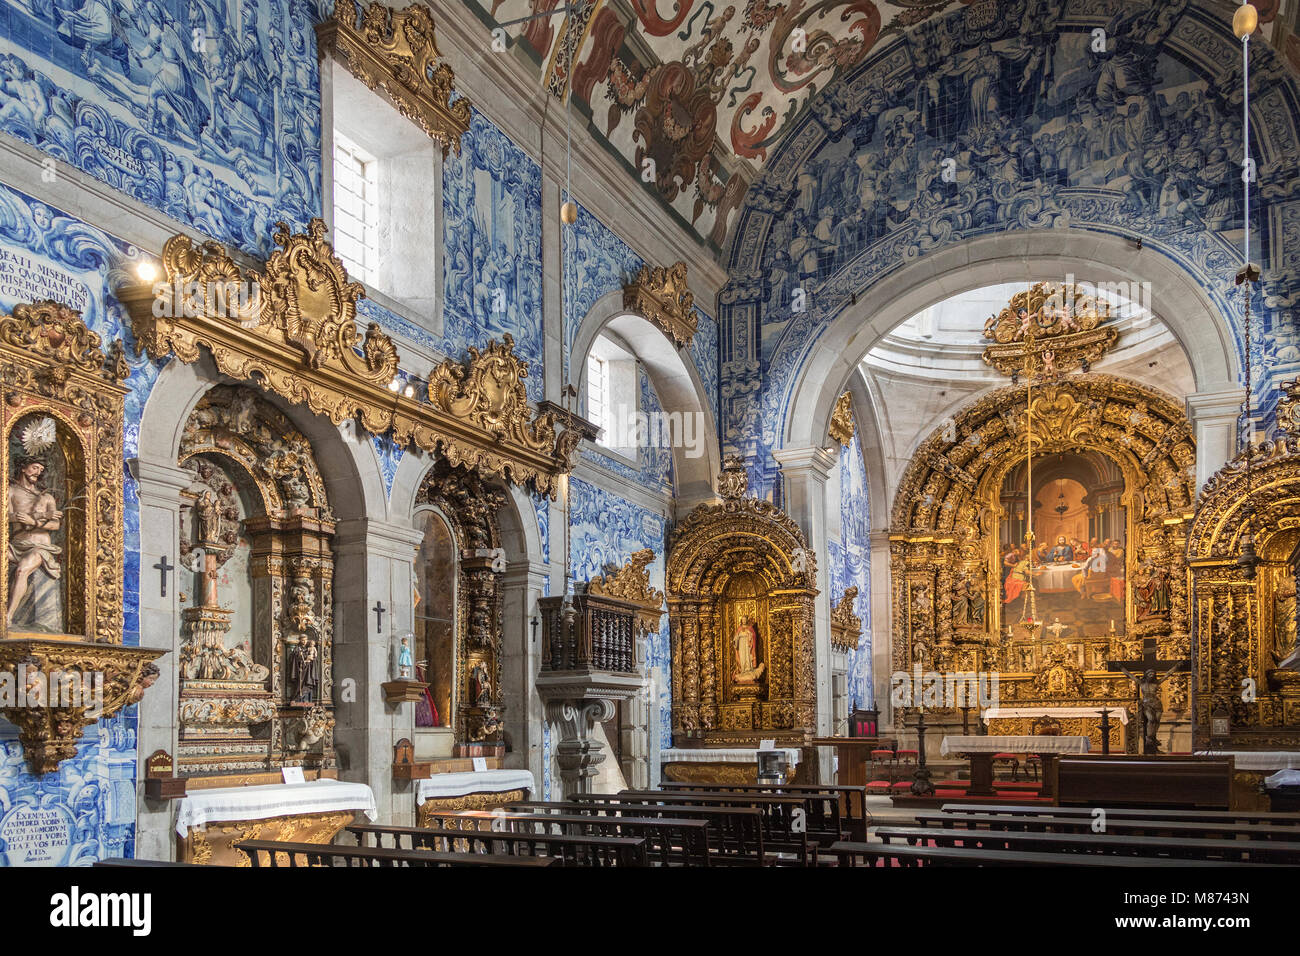 Interior of the Se Cathedral of Viana do Castelo in northern Portugal. - Stock Image